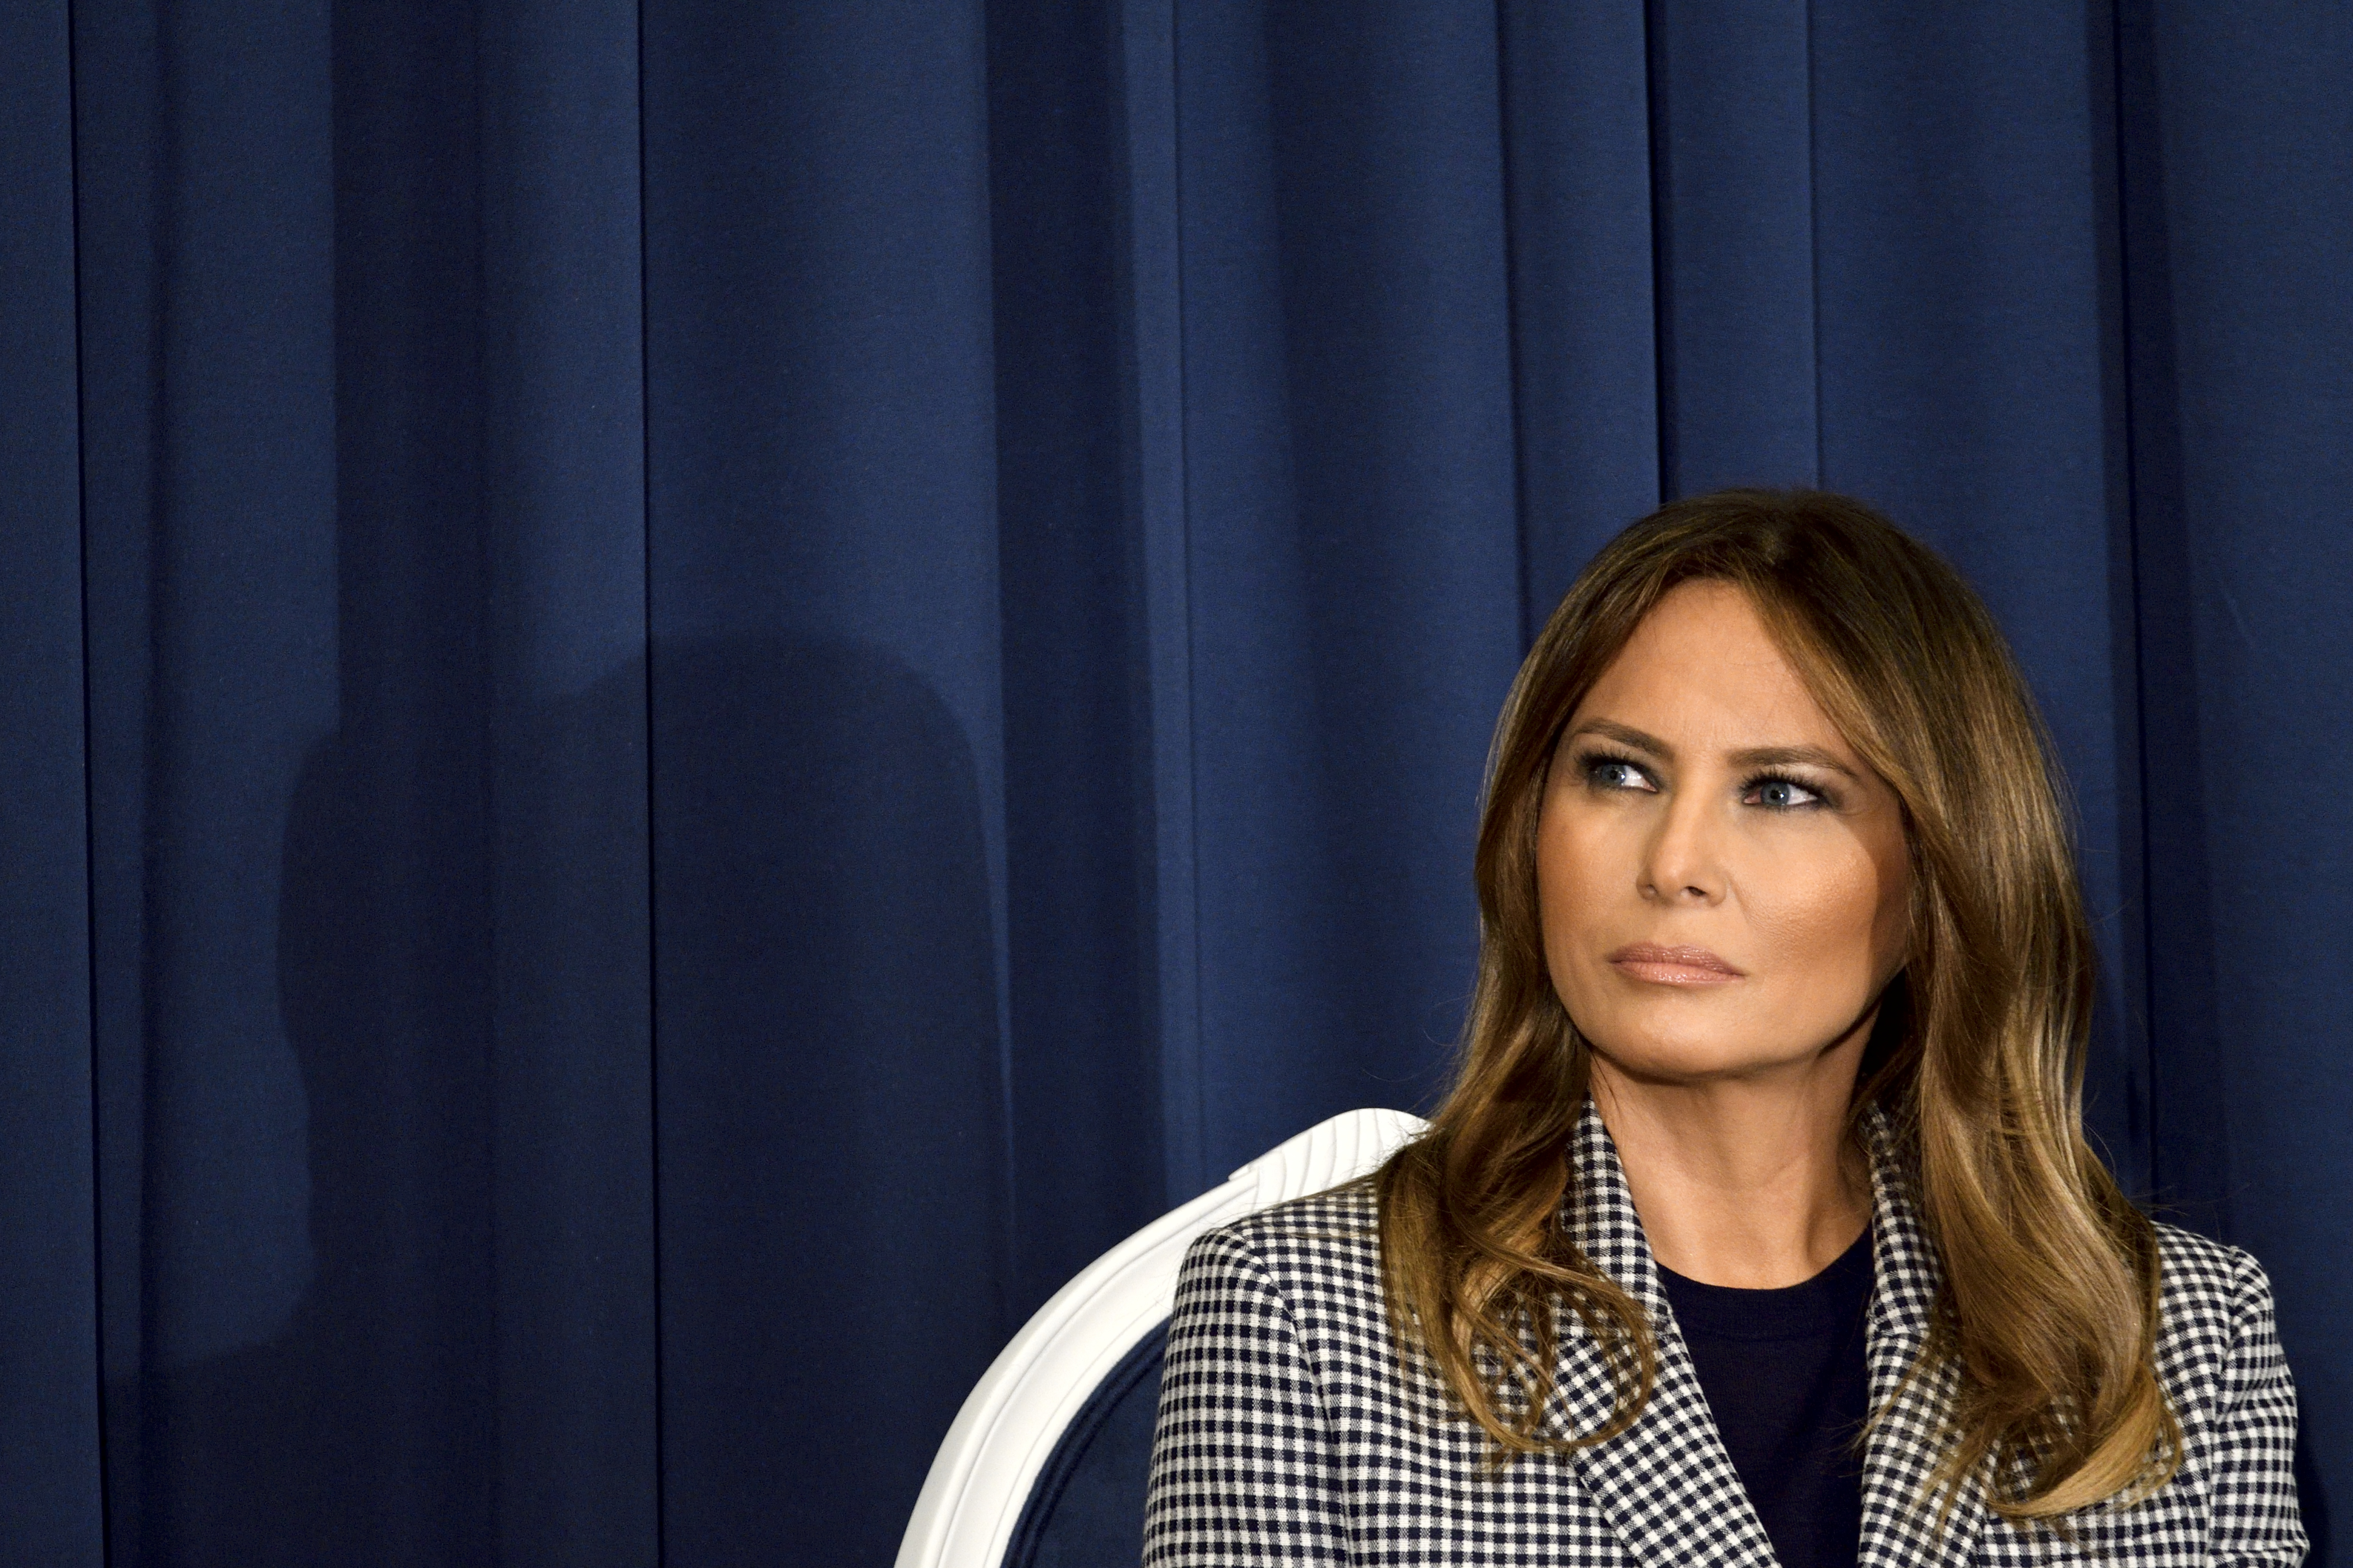 First Lady Melania Trump attends the conference on Neonatal Abstinence Syndrome (NAS) at Thomas Jefferson University Hospital, in Philadelphia, PA, on October 17, 2018. (Photo by Bastiaan Slabbers/NurPhoto)